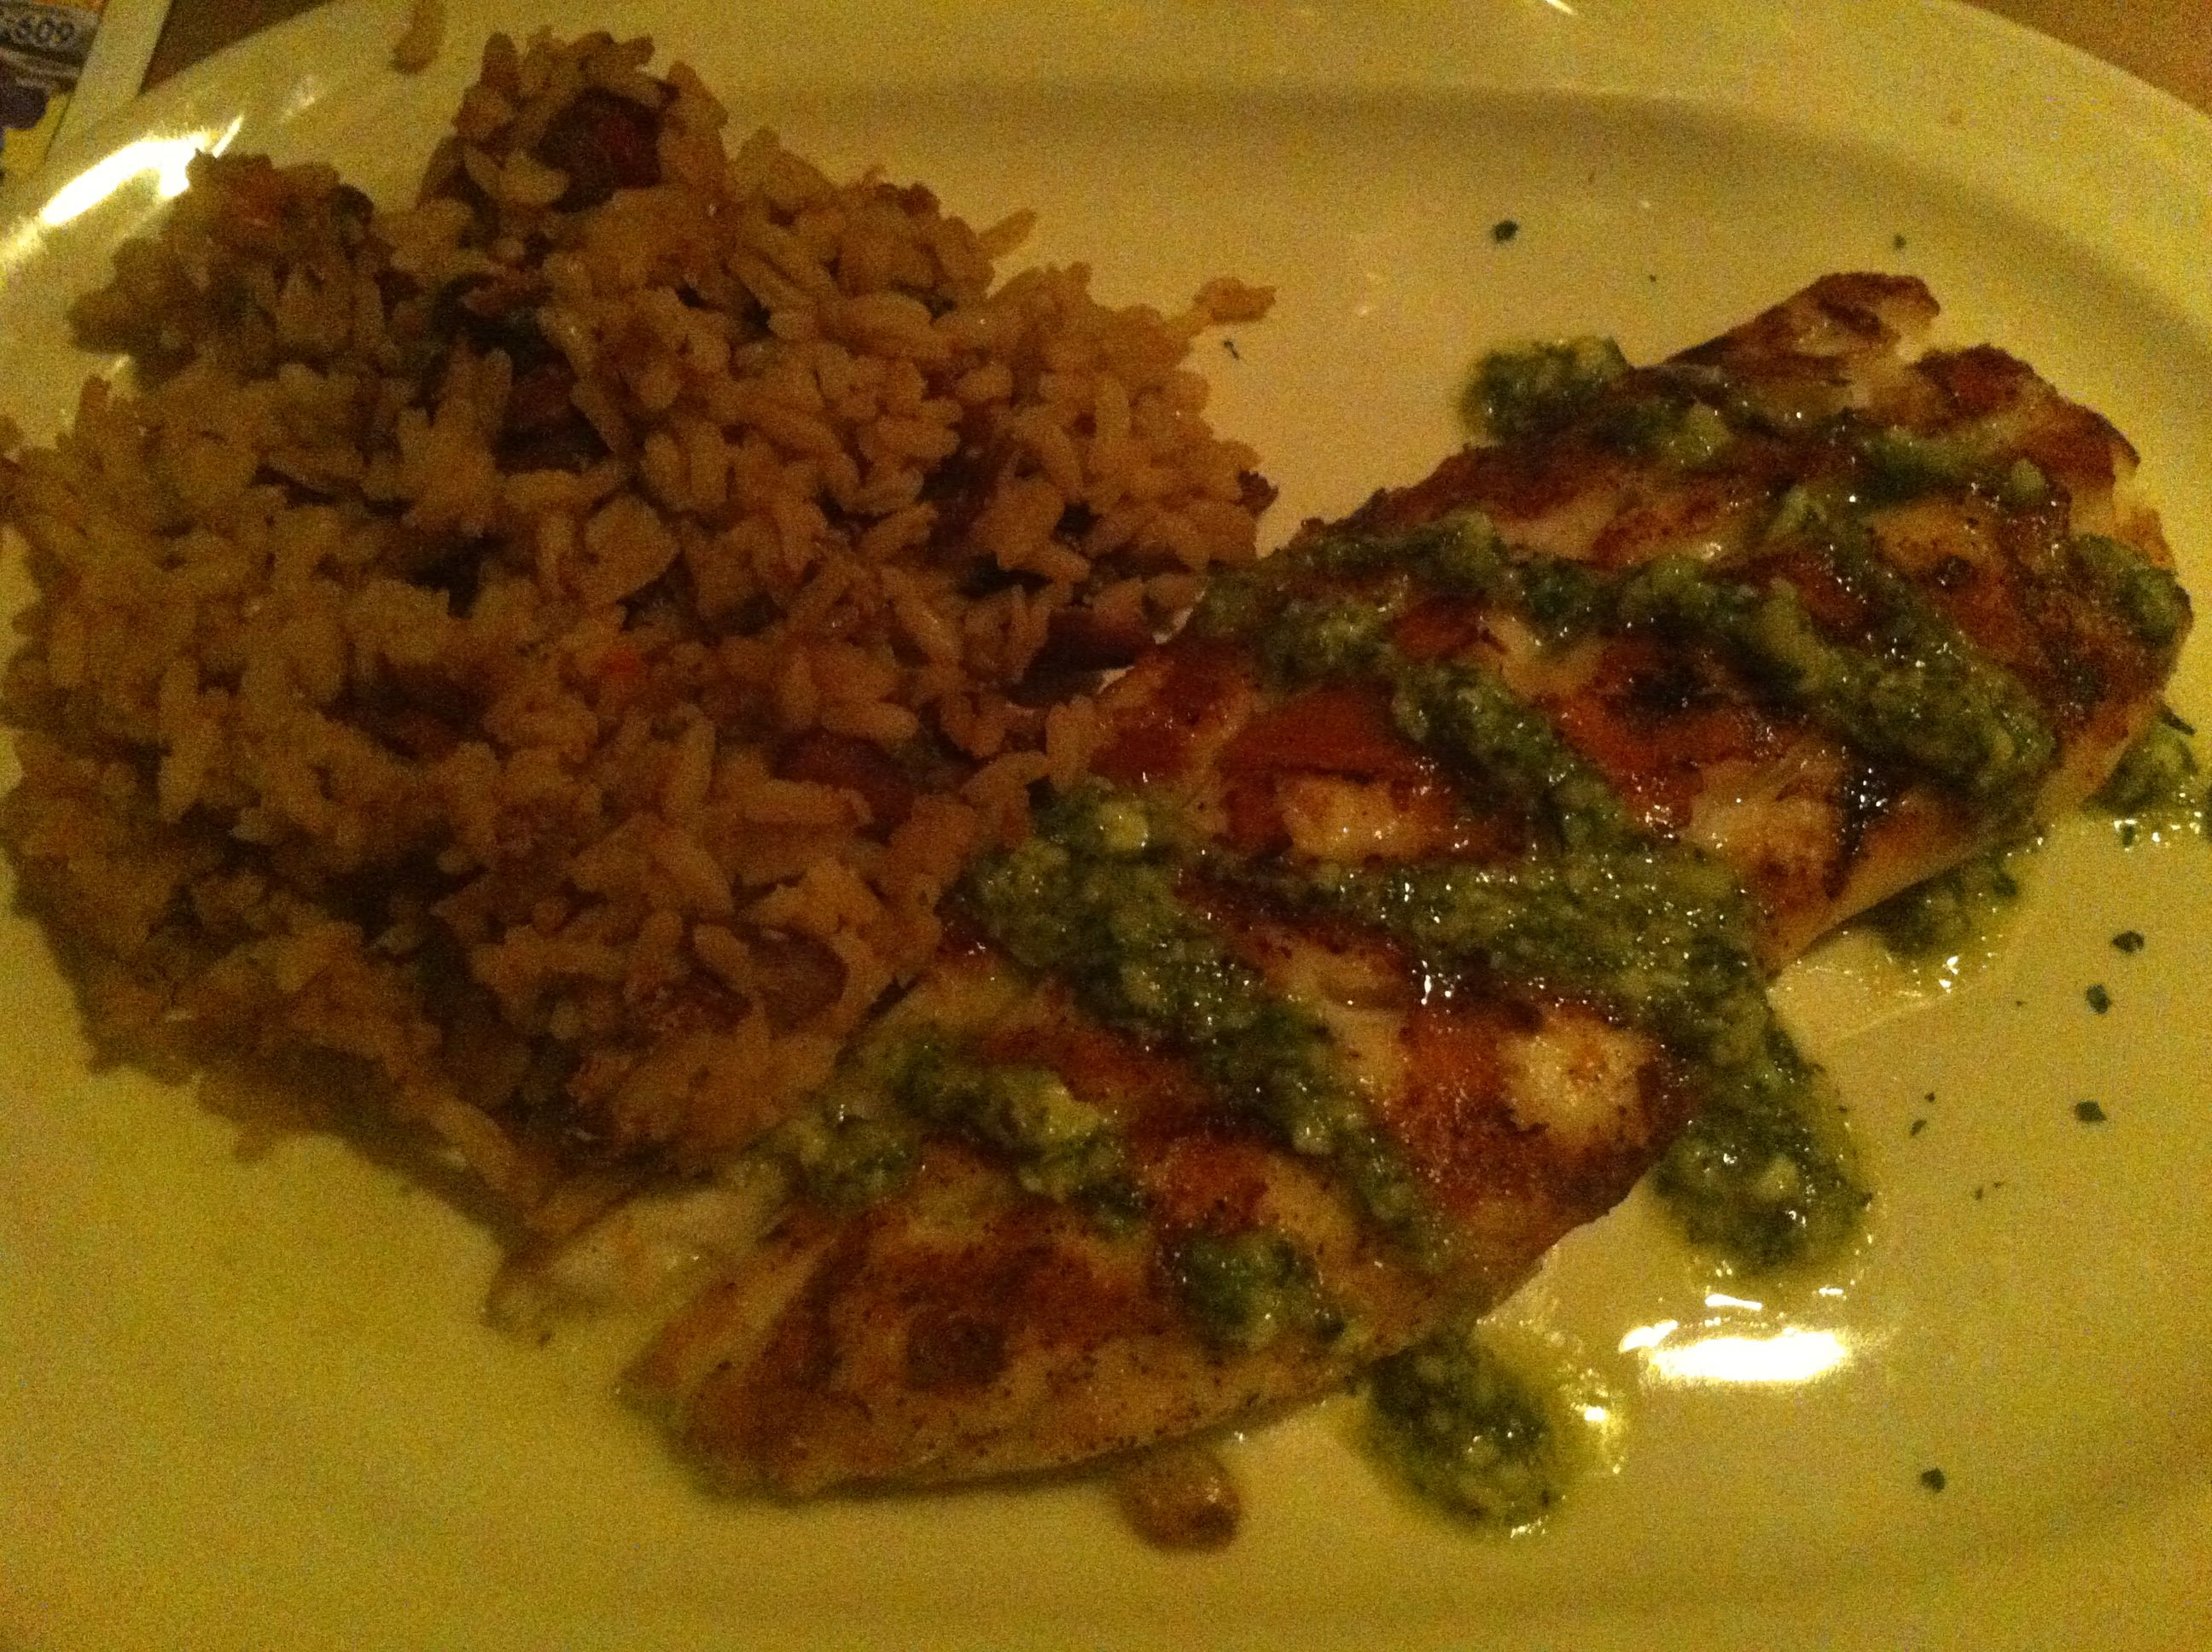 Grilled Grouper at the Black Whale Bar & Fish House in Beach Haven NJ.